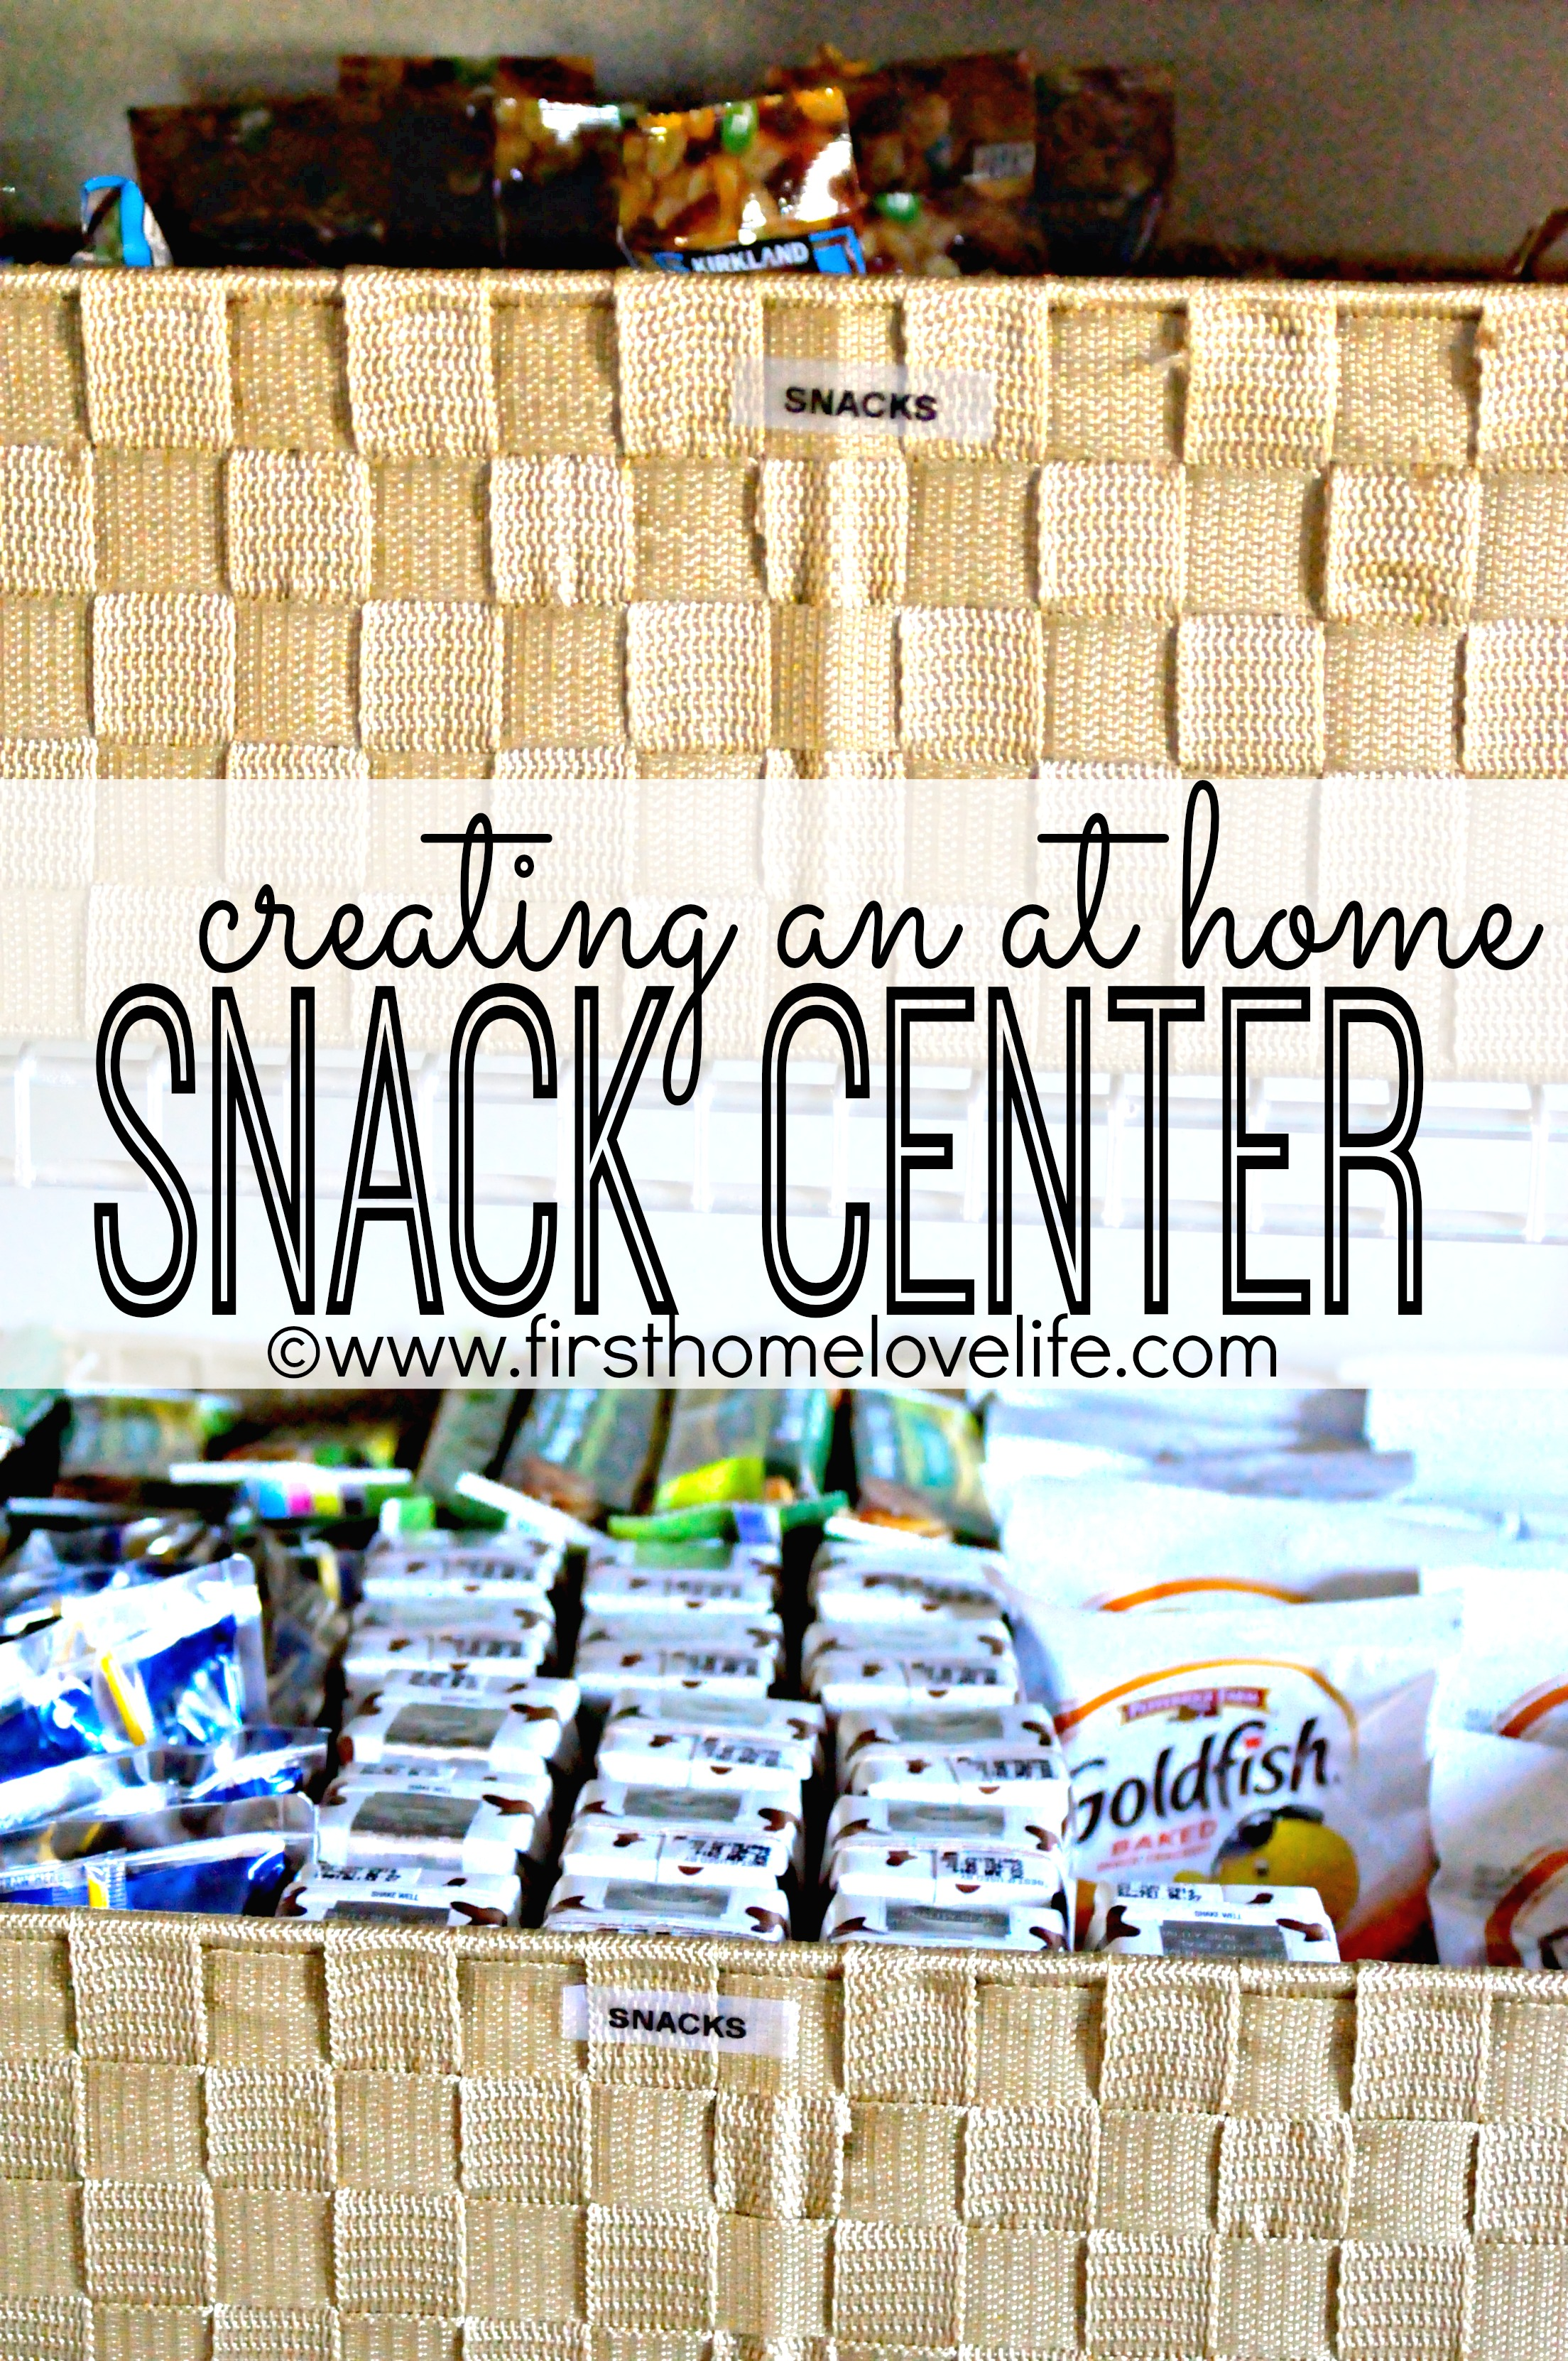 Home snack center - Find A Way To Keep All Snack Items Together In A Way That Was Easy For The Kids To Help Themselves The Easiest Solution To This Was To Utilize